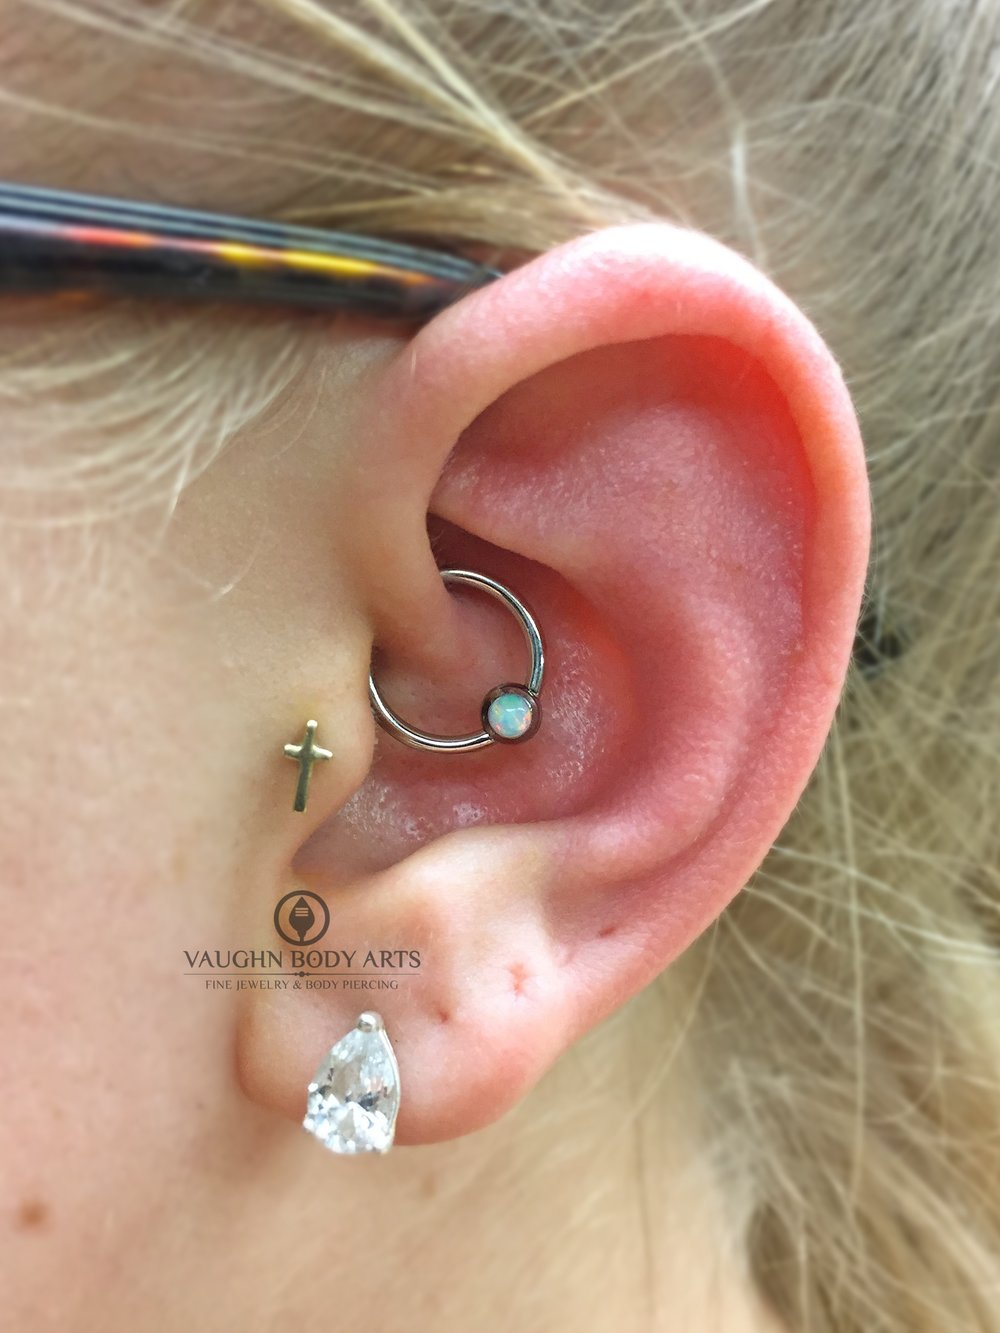 Daith piercing with titanium jewelry from Anatometal.